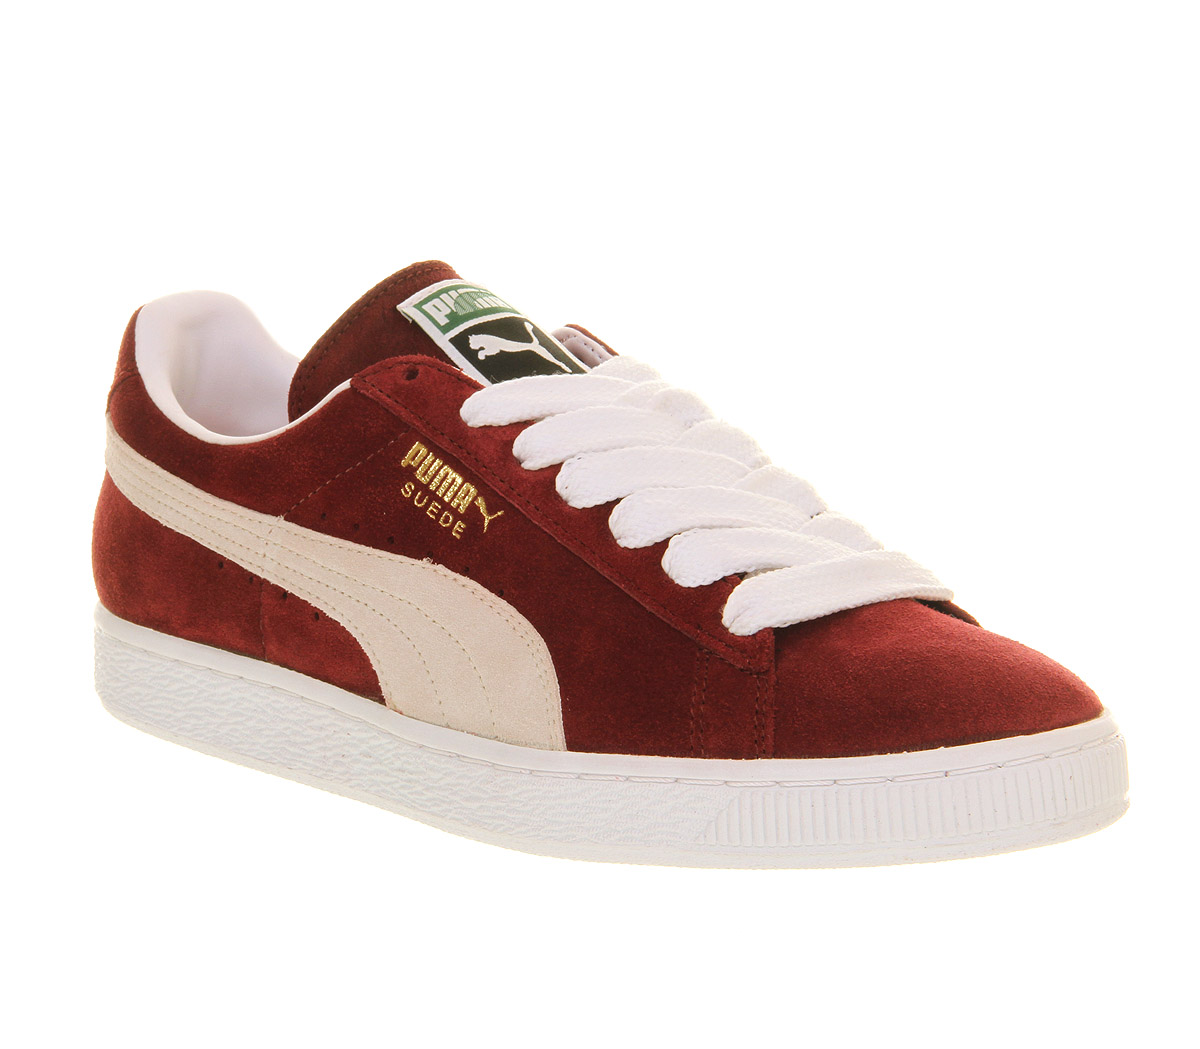 Mens Puma Suede Classic TEAM BURGUNDY WHITE Trainers Shoes  8f590654f